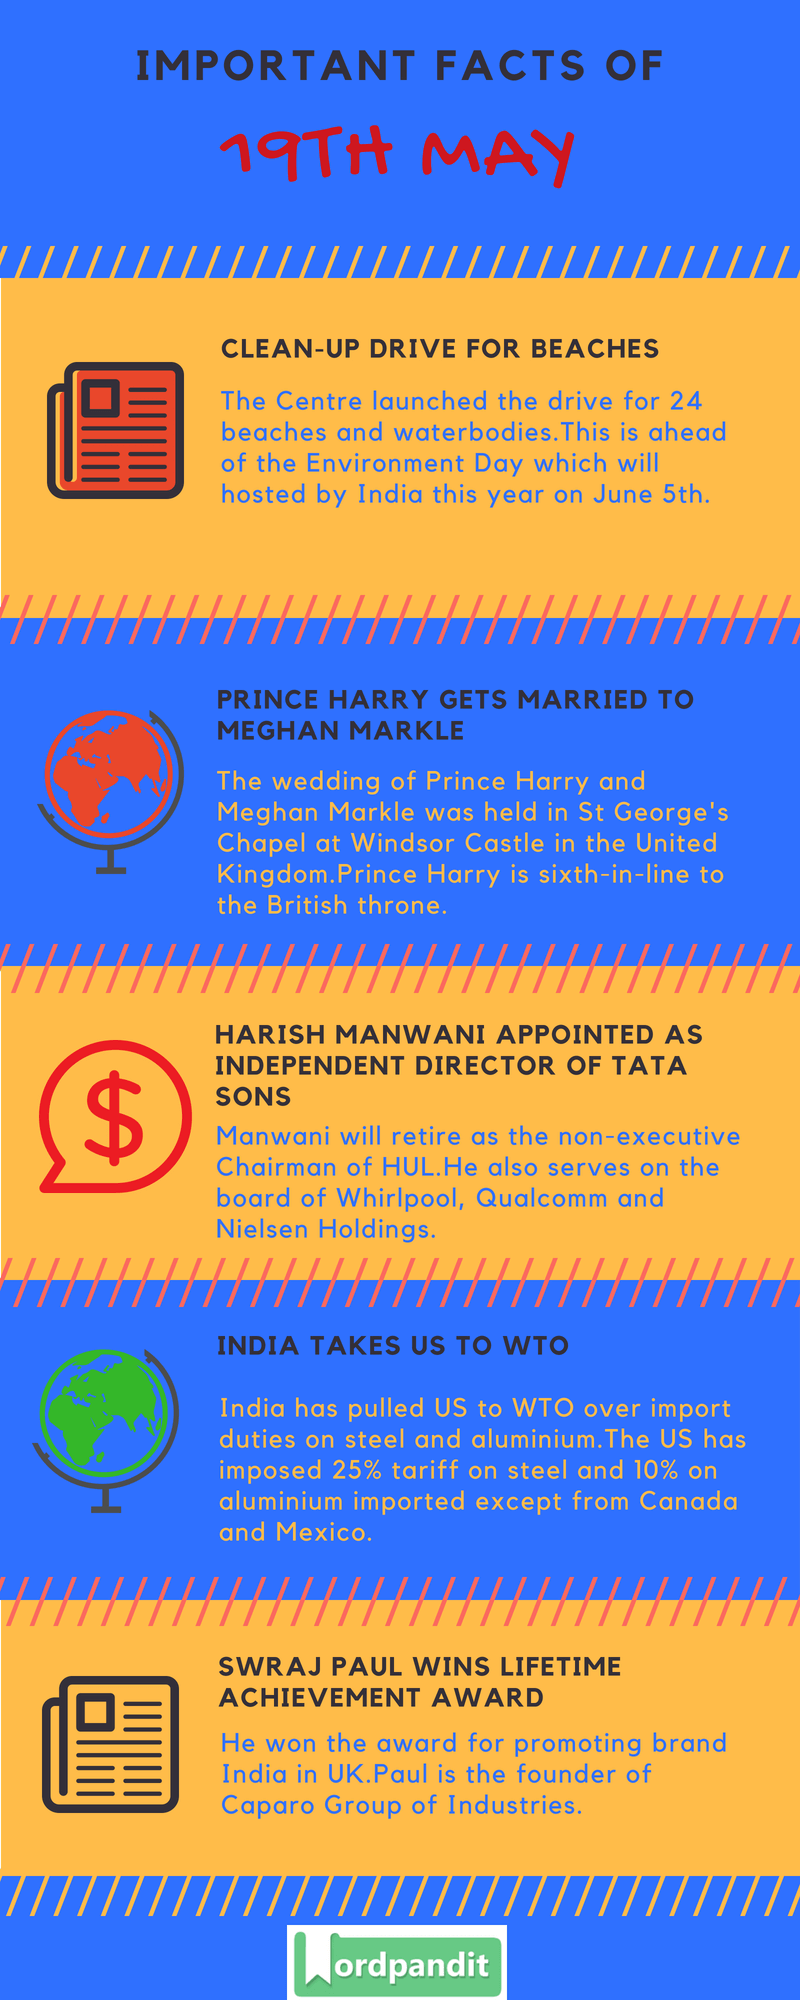 Daily Current Affairs 19 May 2018 Current Affairs Quiz May 19 2018 Current Affairs Infographic